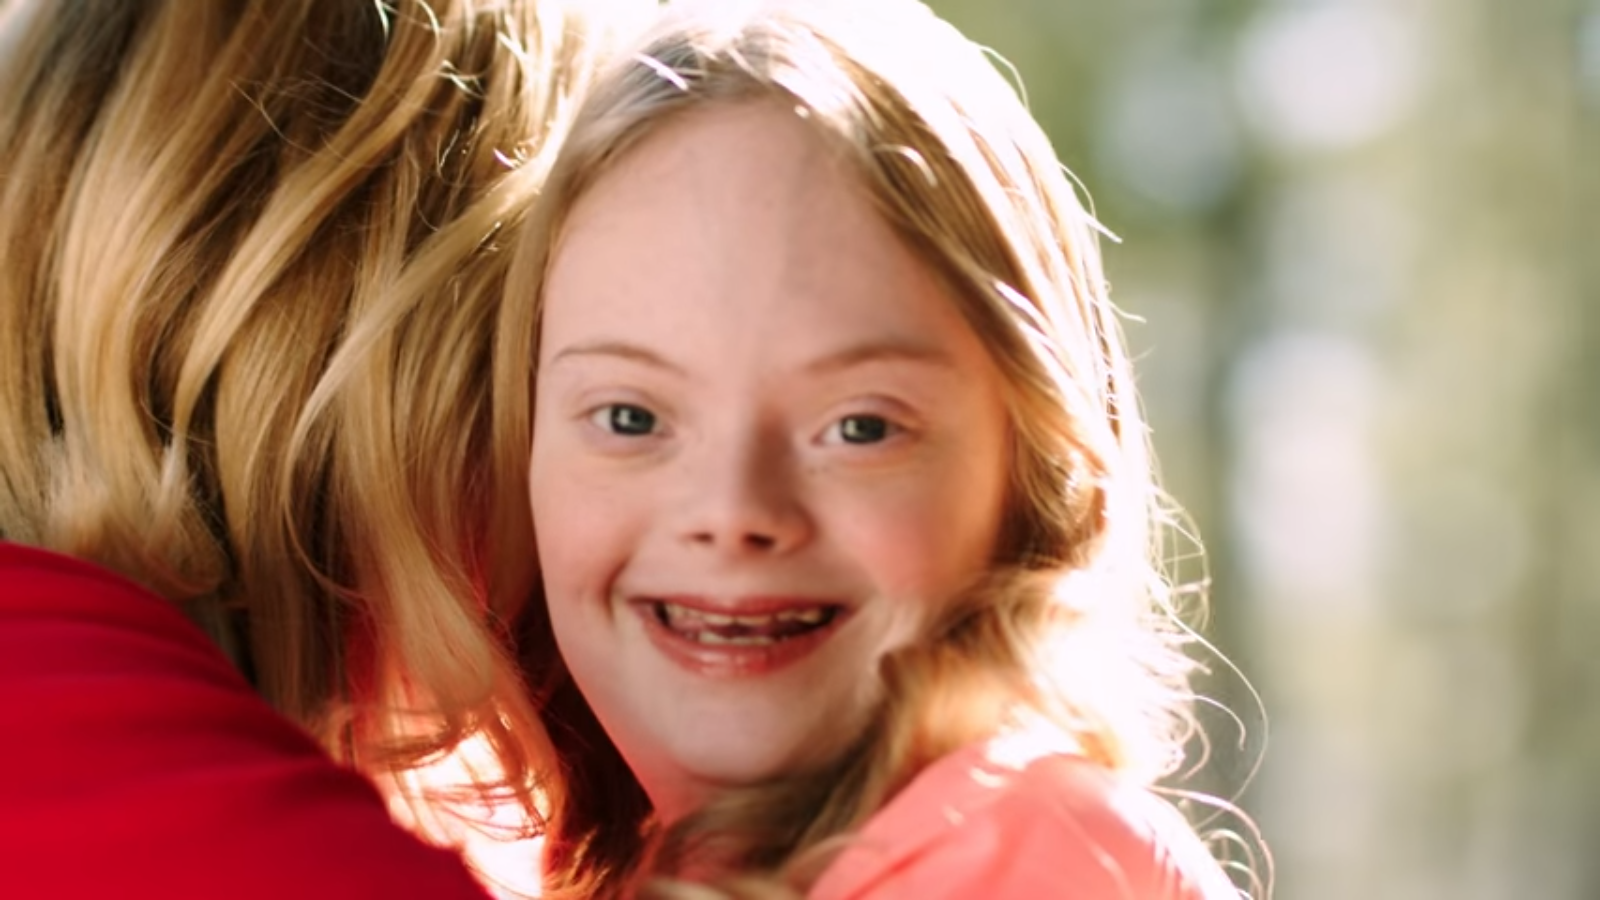 sexy downs syndrome girl